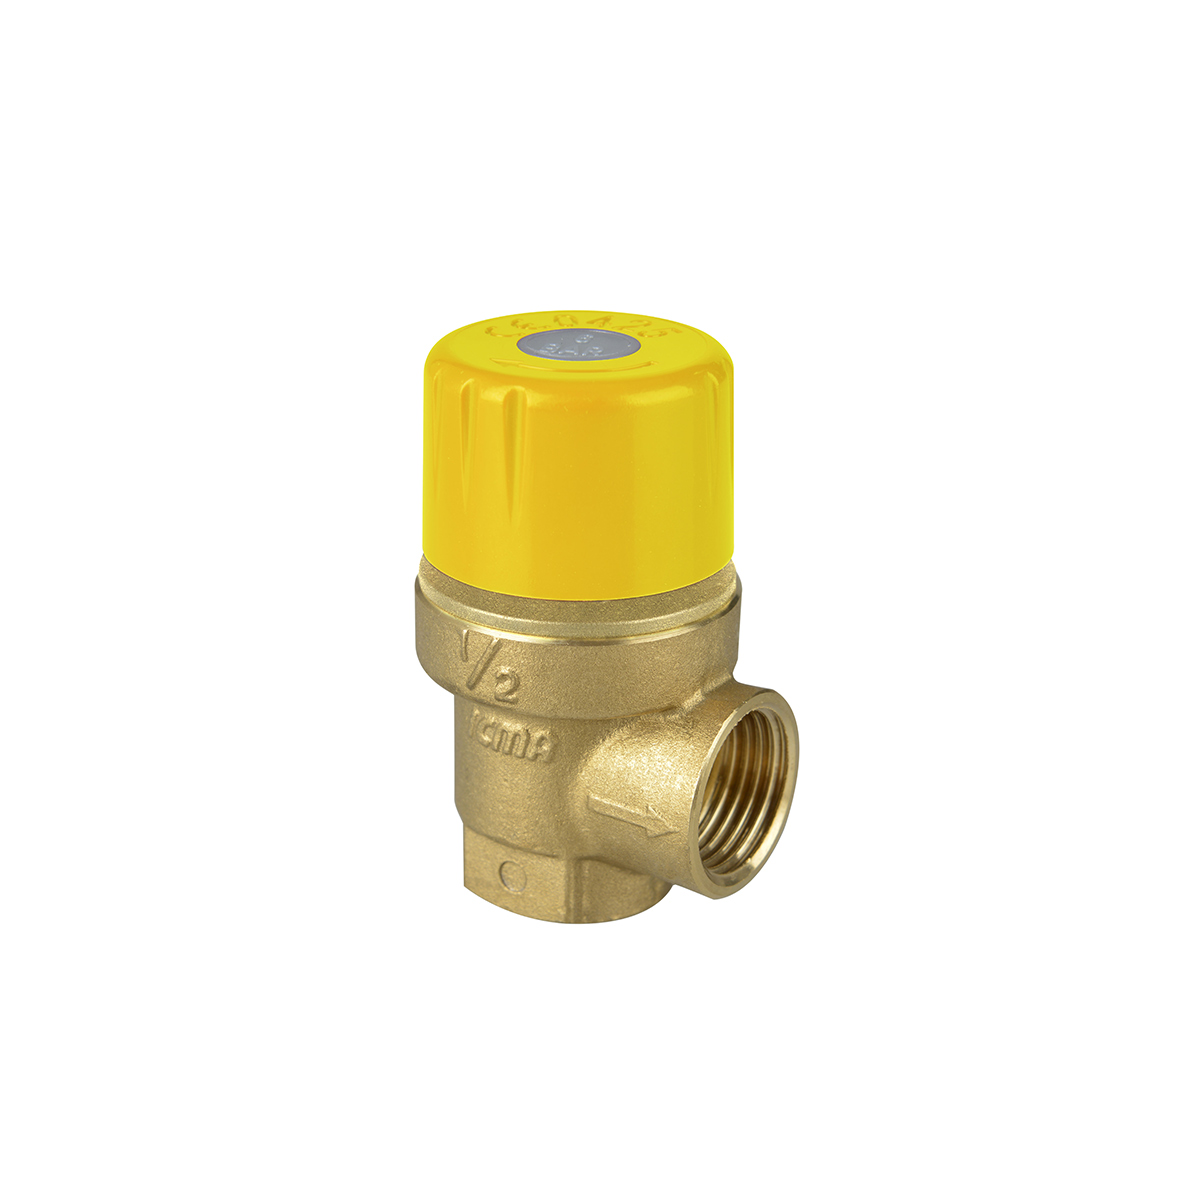 Fixed setting safety valve for solar systems